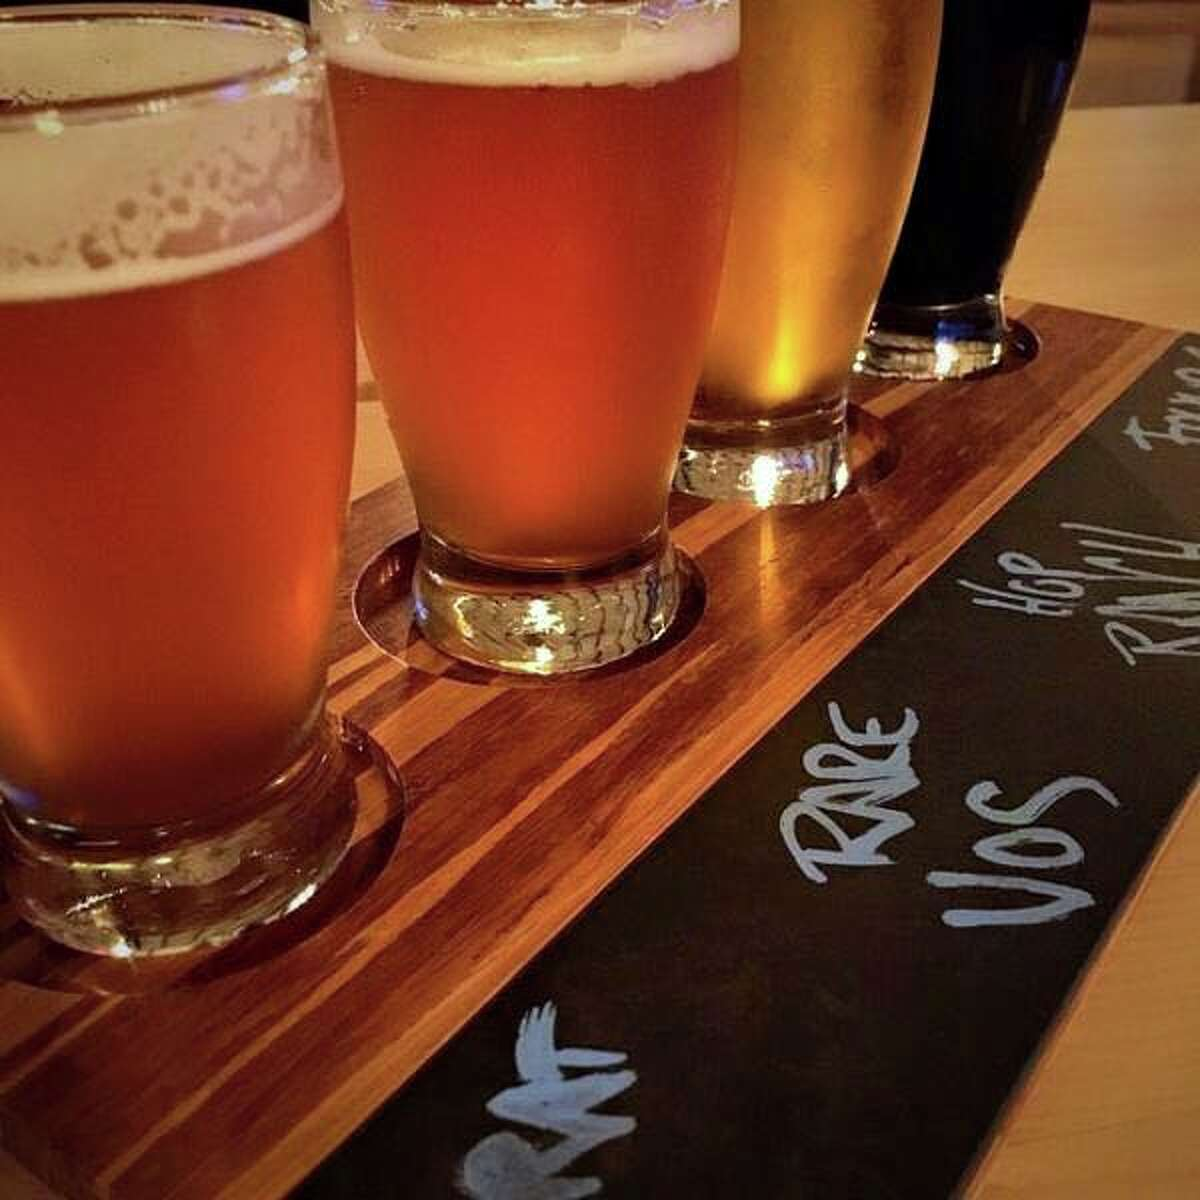 The Hops Company in Derby is hosting Road Home For the Holidays Charity on Friday, to benefit